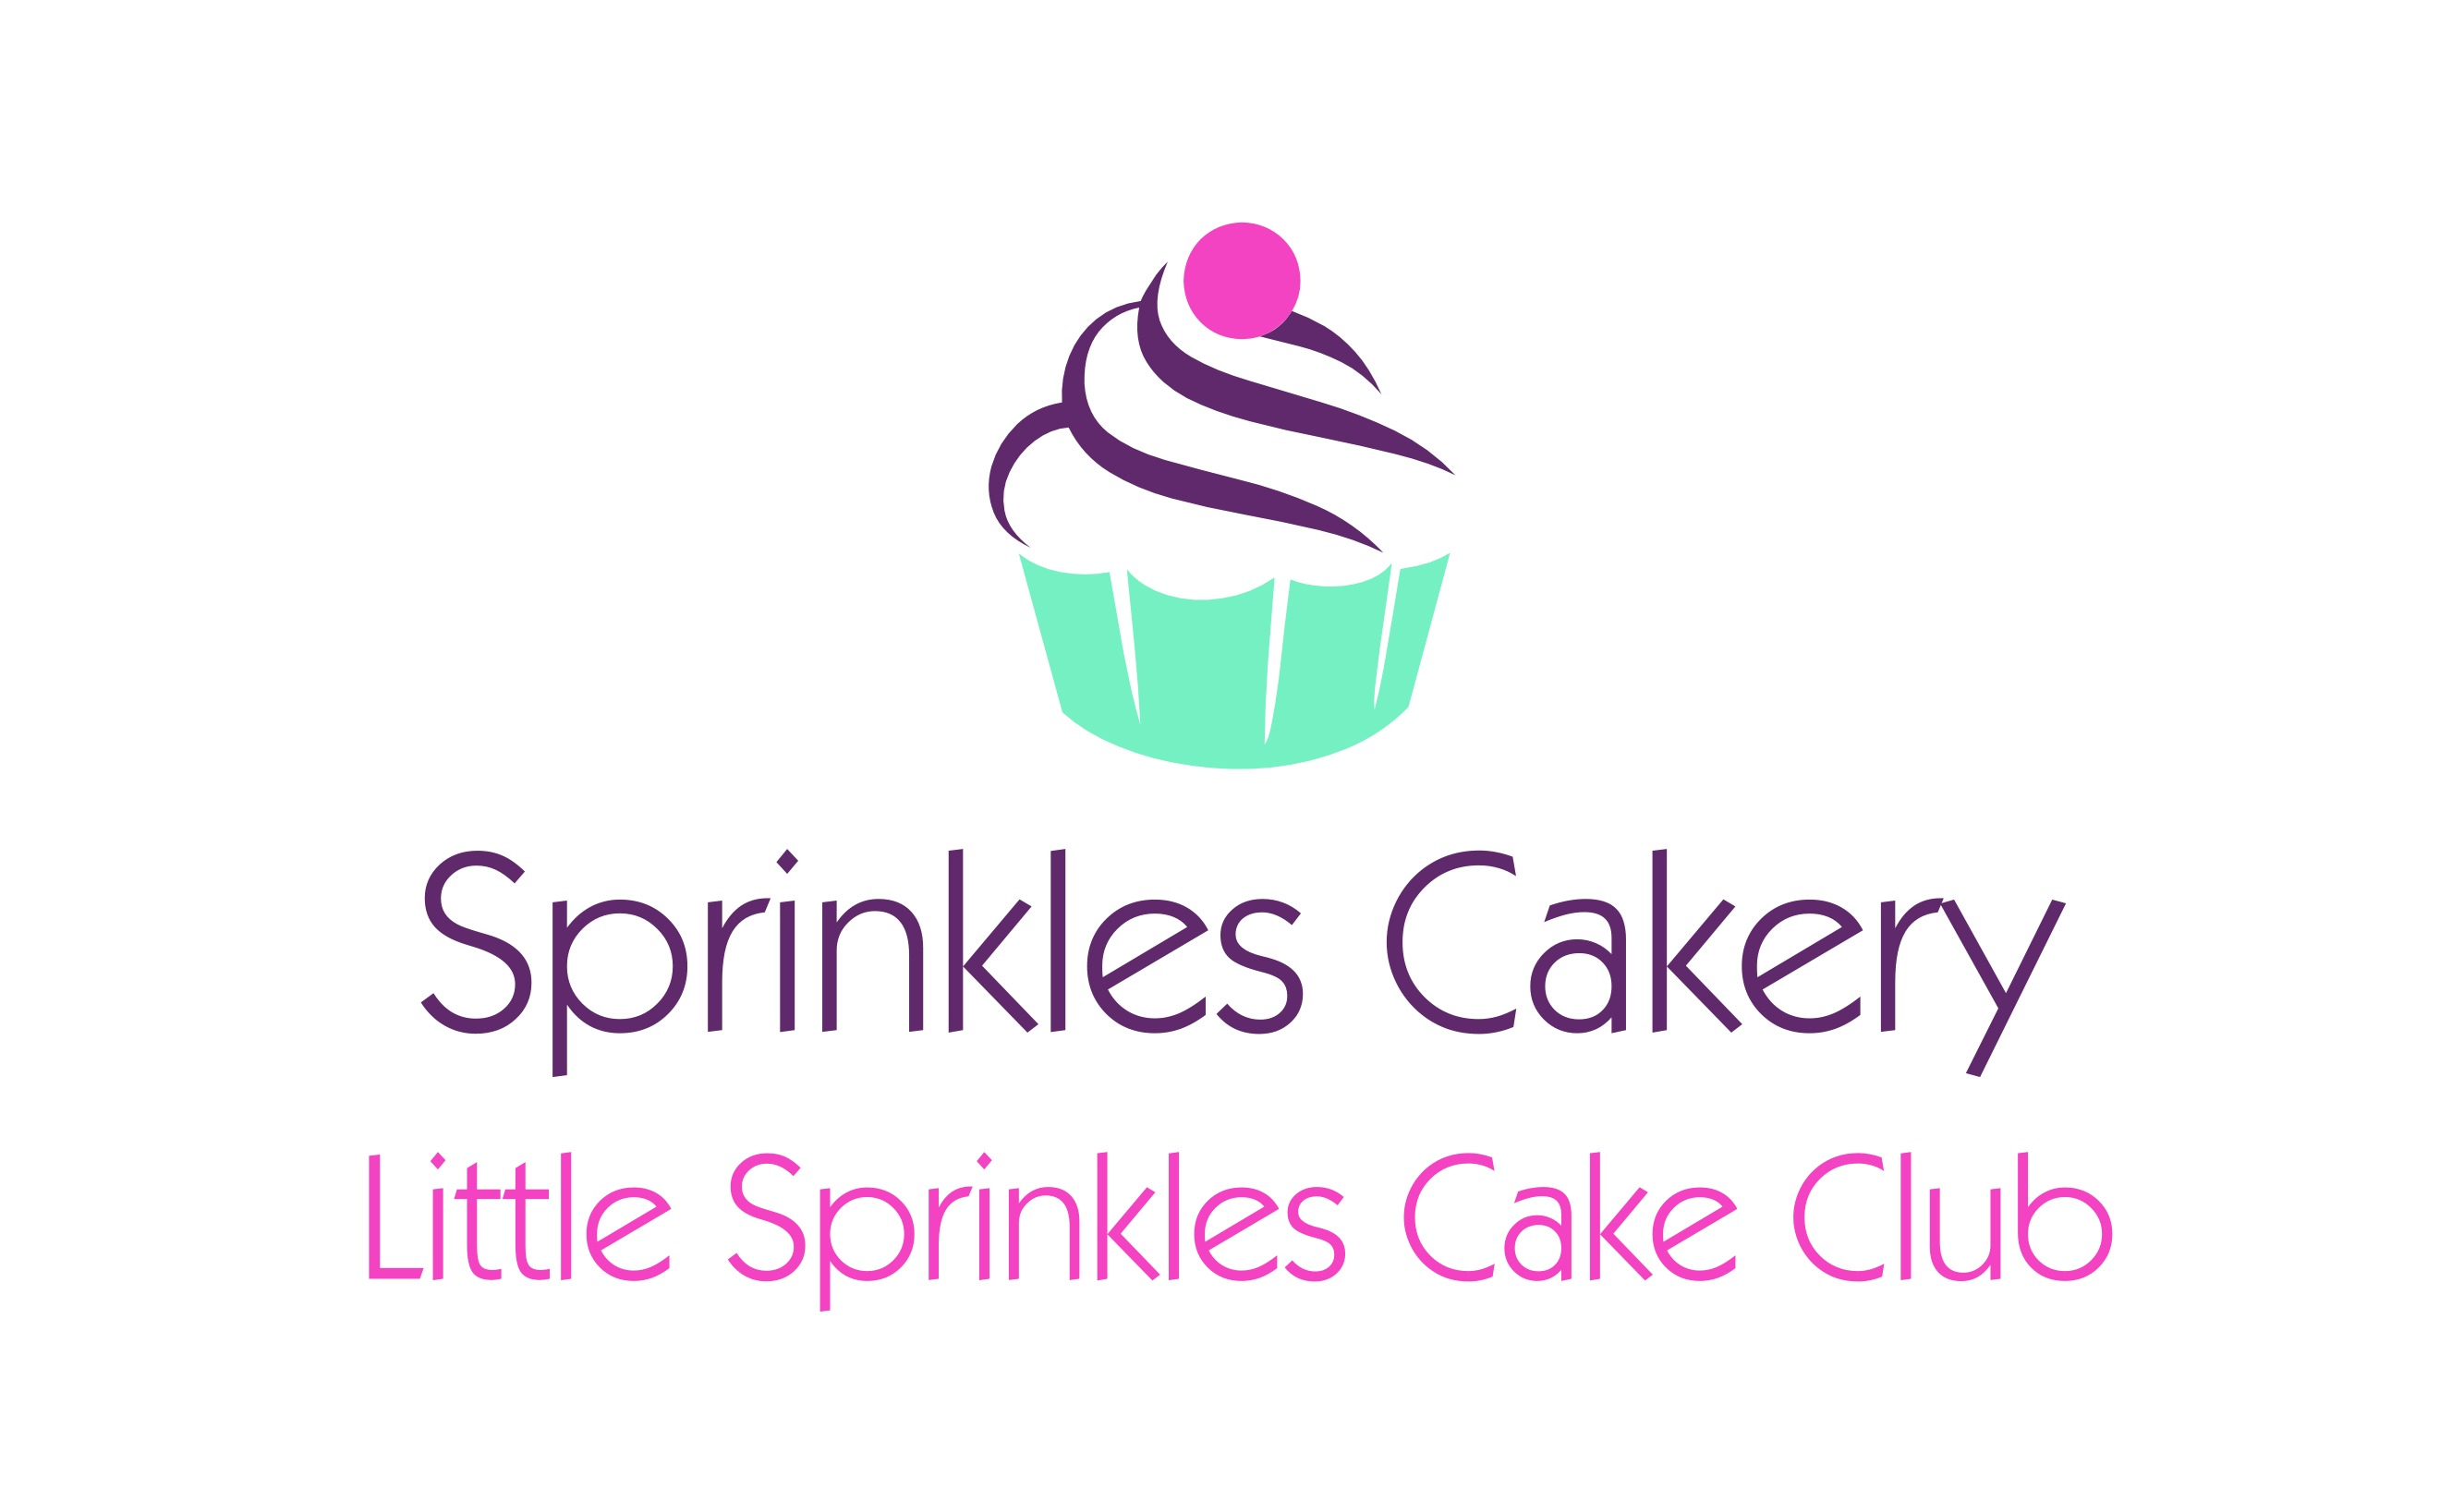 Incredible Cakemaker In Tunbridge Wells Kent Cupcakes Delivery Sevenoaks Personalised Birthday Cards Paralily Jamesorg